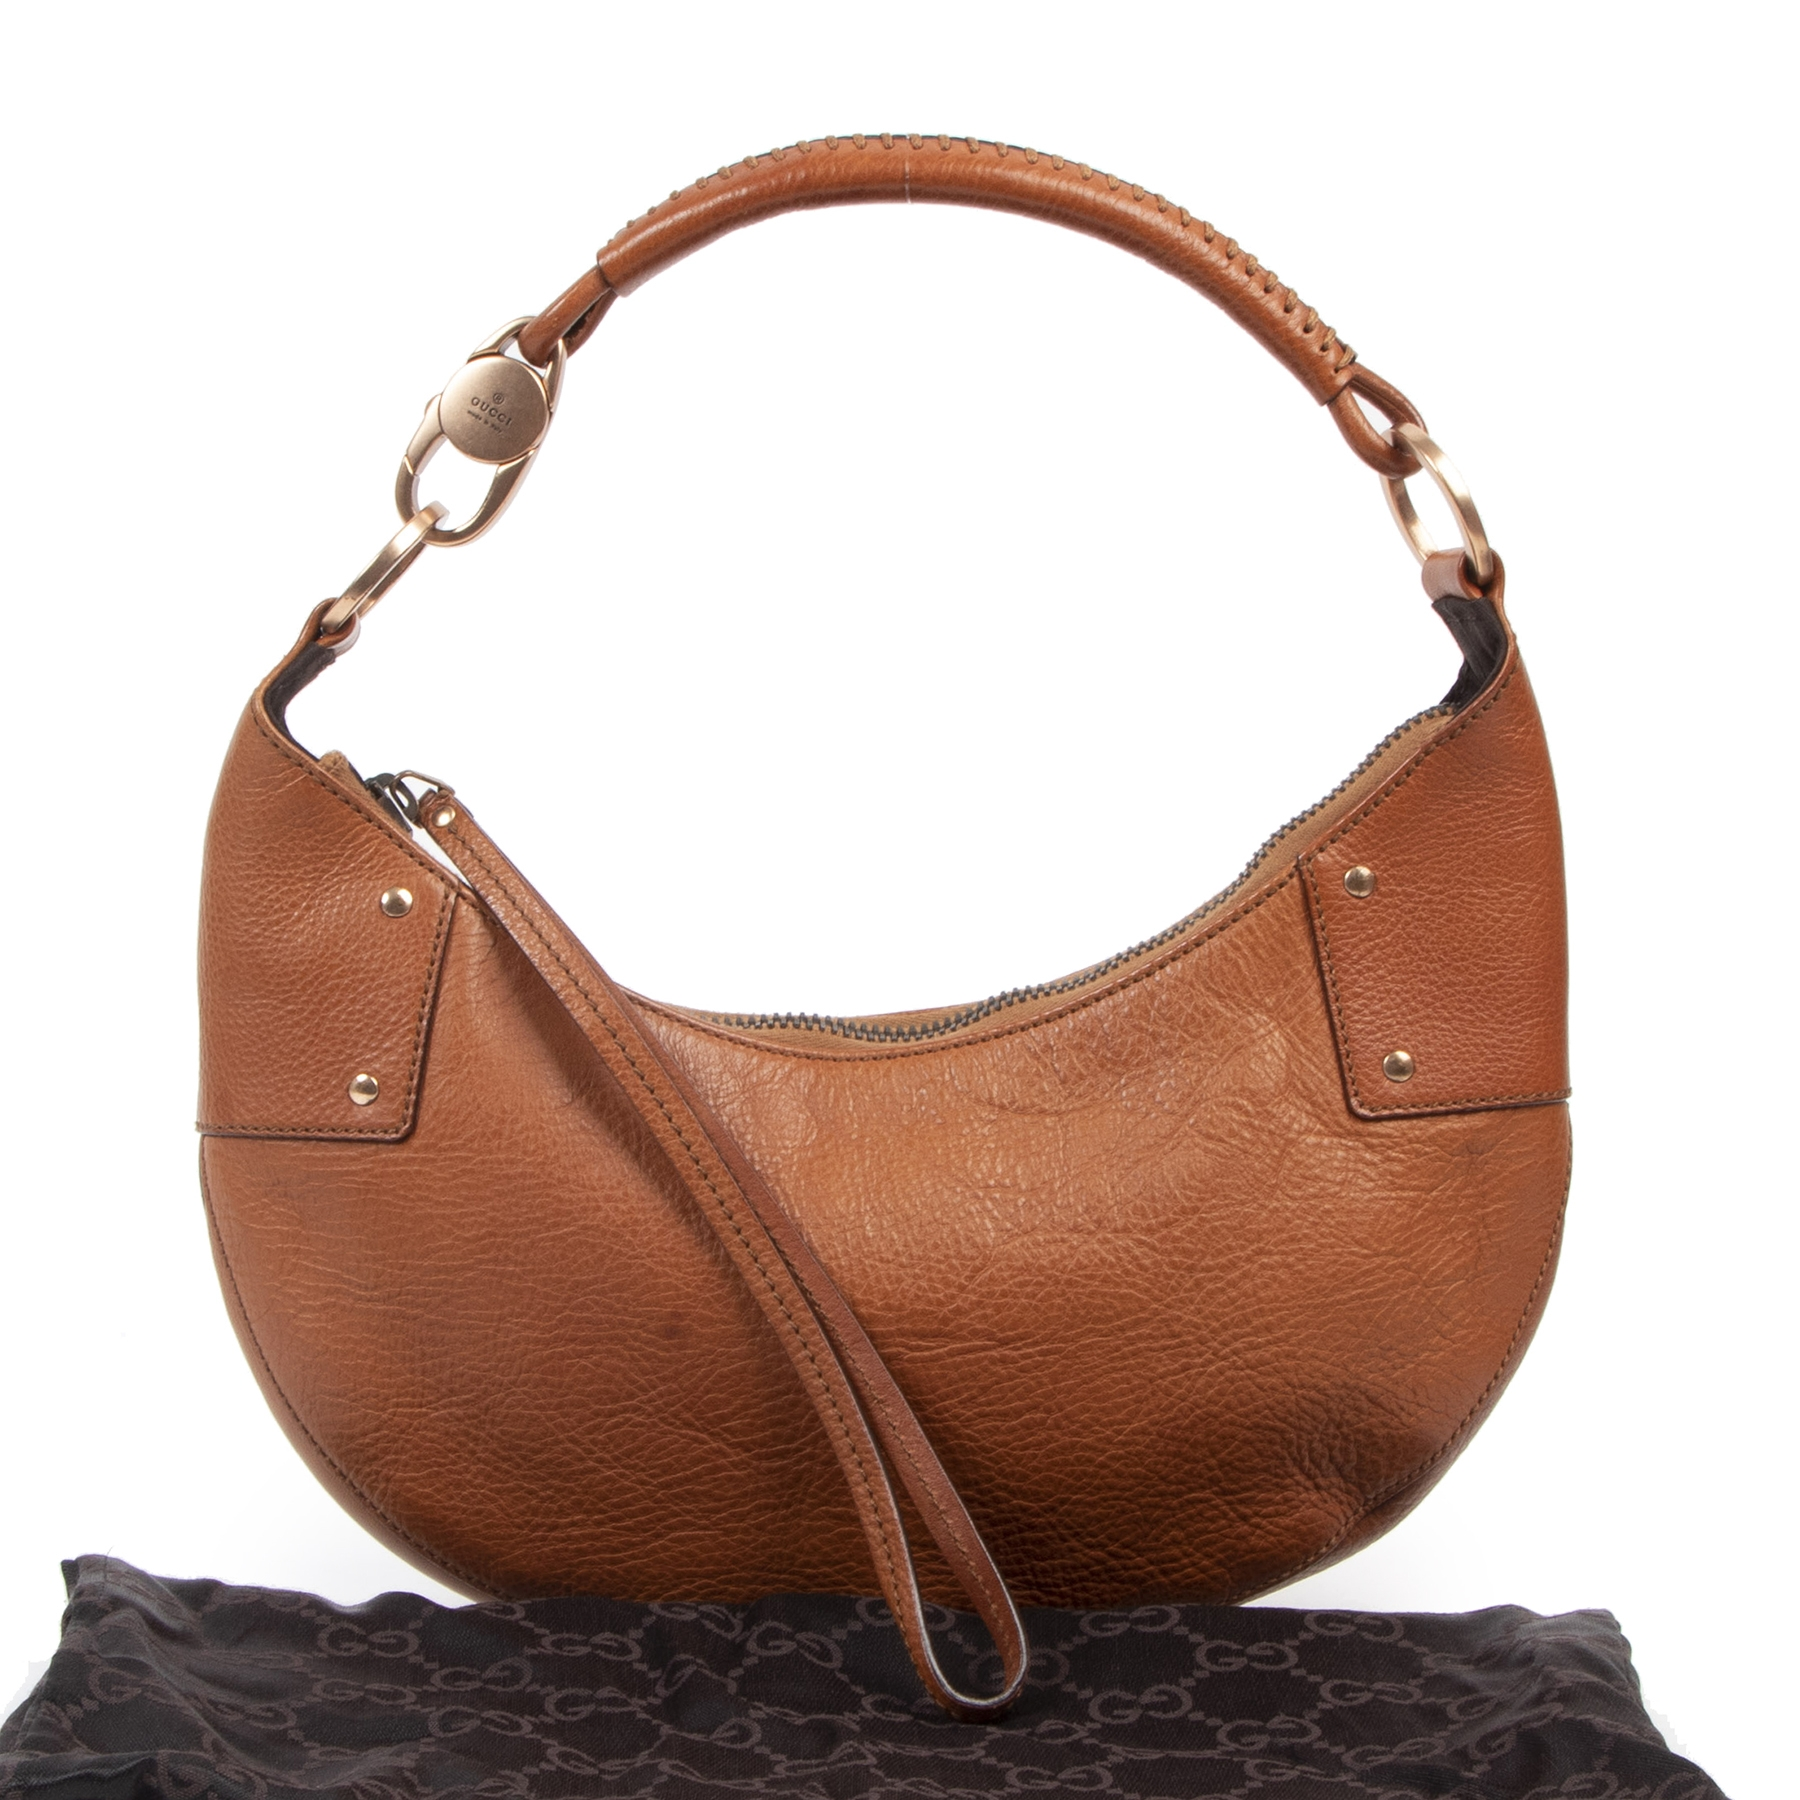 Gucci Camel Leather Half Moon Hobo Bag